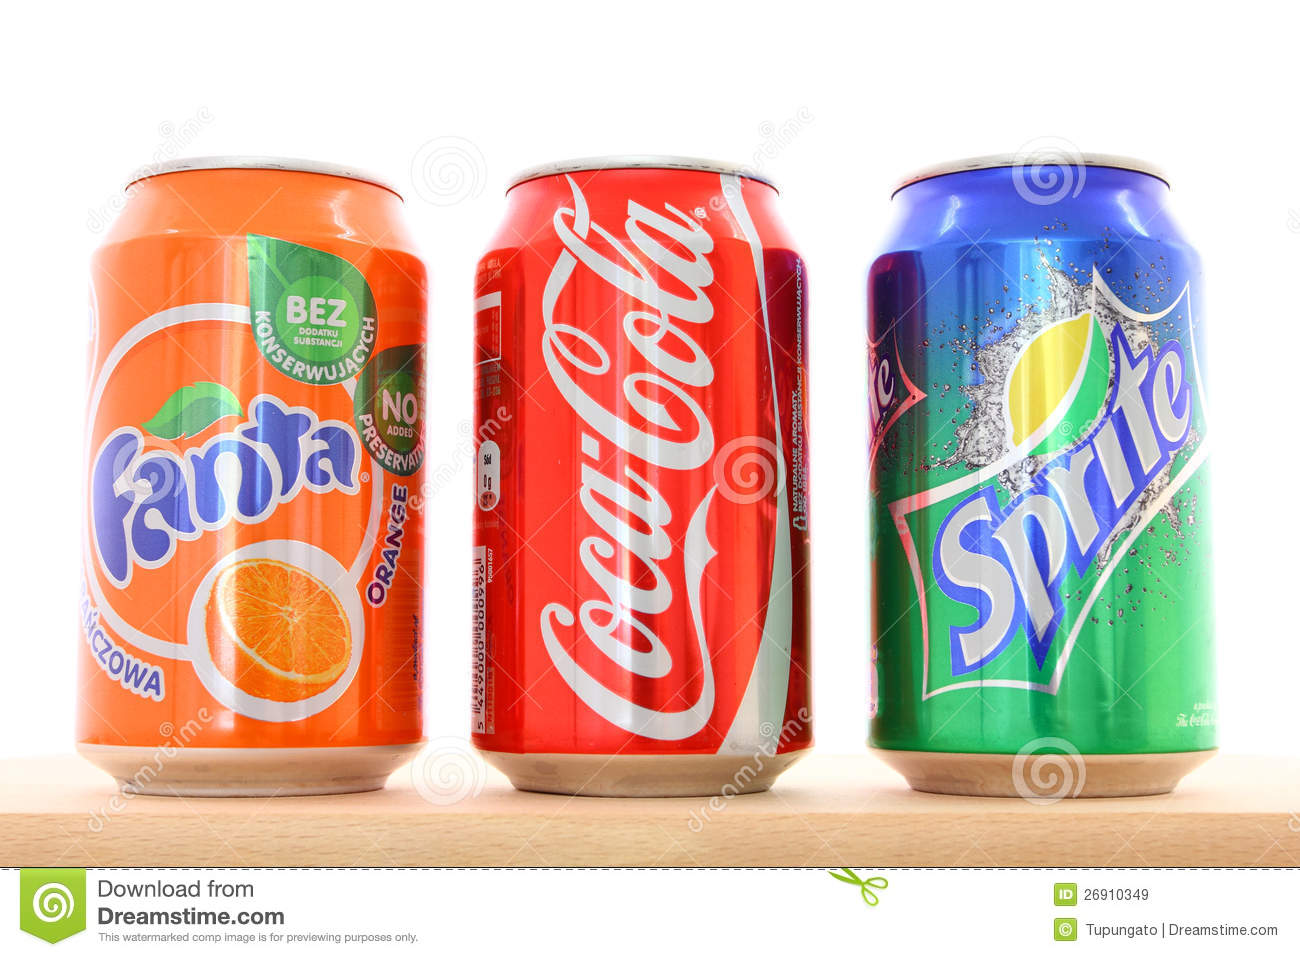 Taking Fanta, Sprite With Vitamin C Is Poisonous - Court To NAFDAC